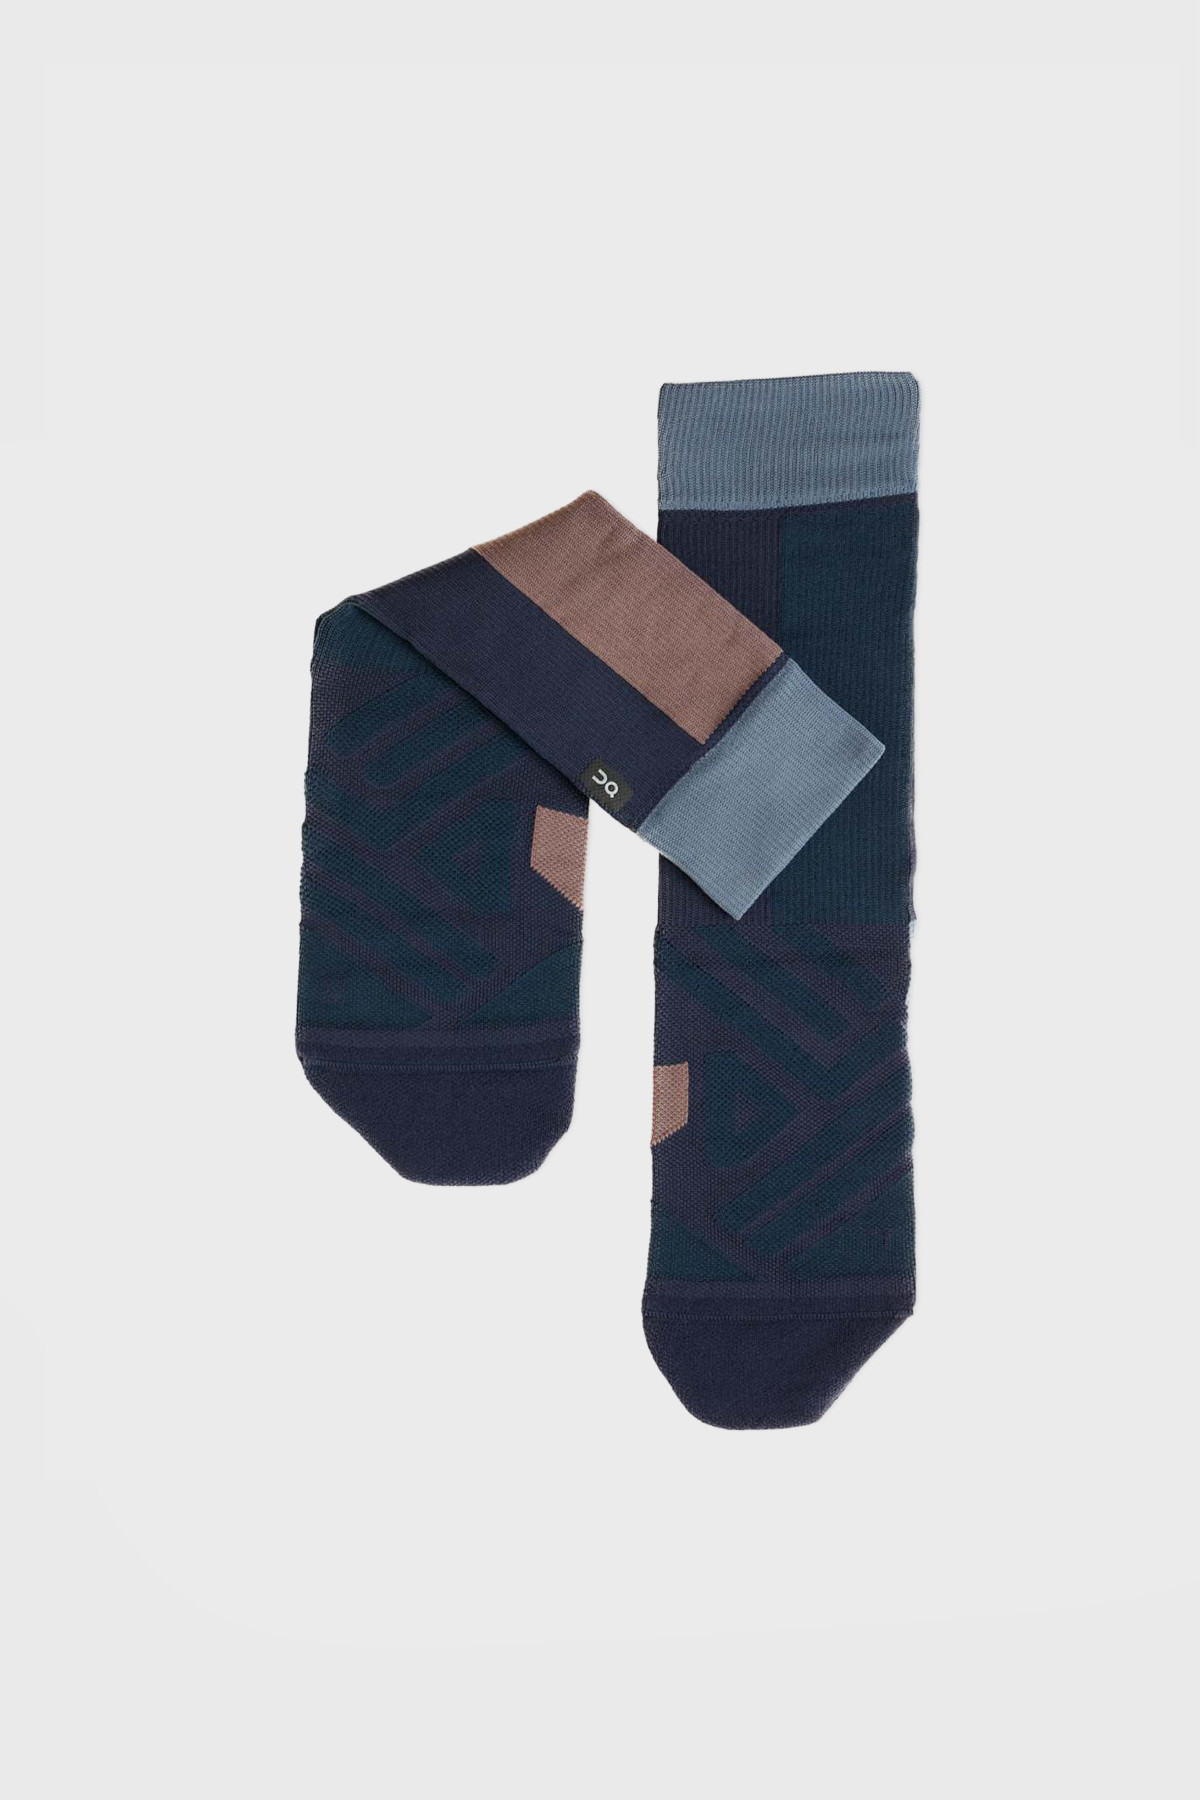 On - High Sock - Navy